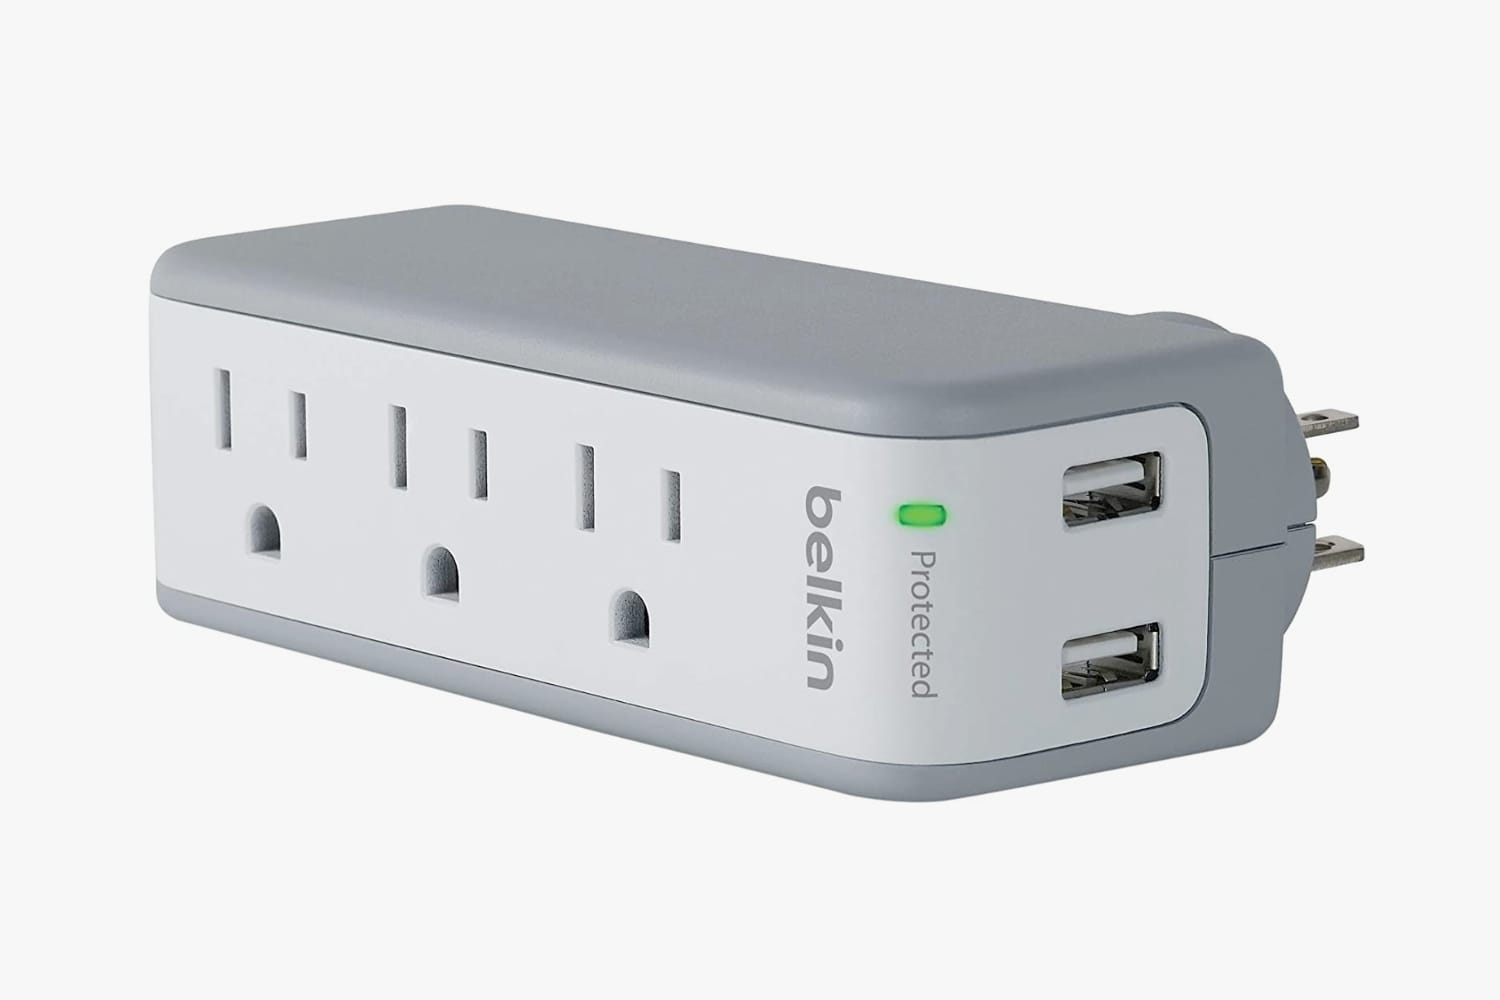 Belkin SurgePlus Mini Travel Chargers